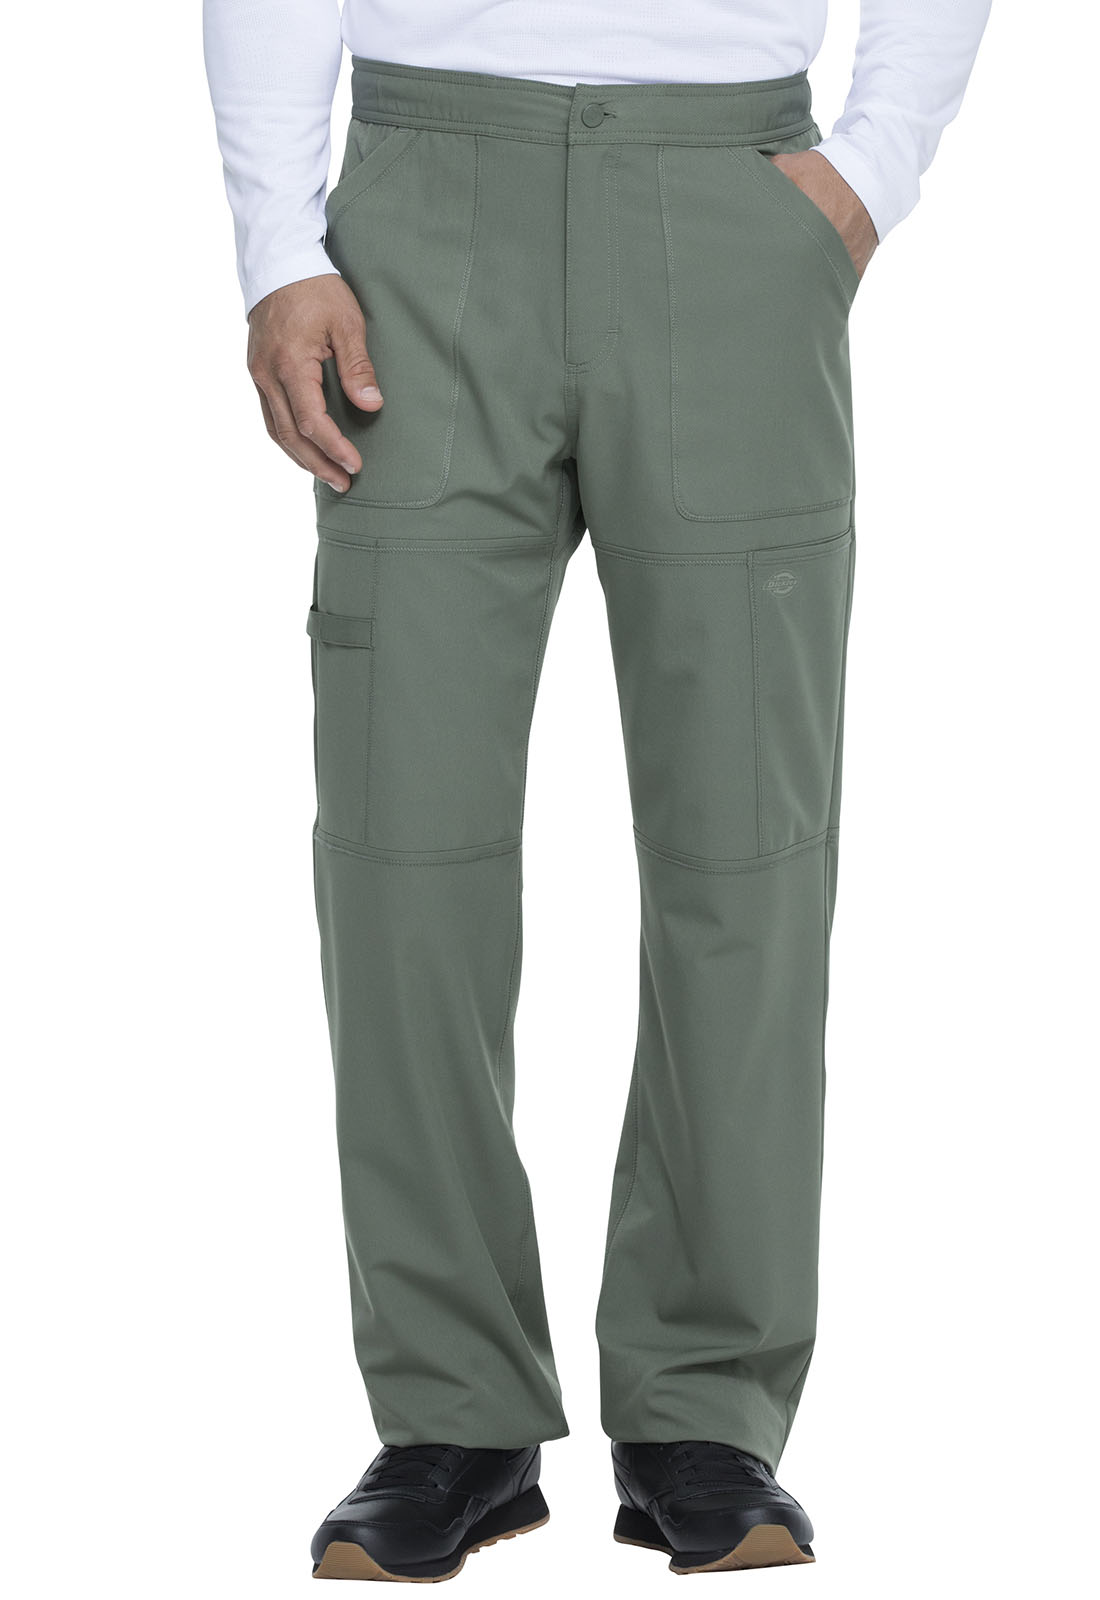 hot new products uk availability low priced Dickies Men's Zip Fly Cargo Pant (Regular) in Olive from Dickies Medical